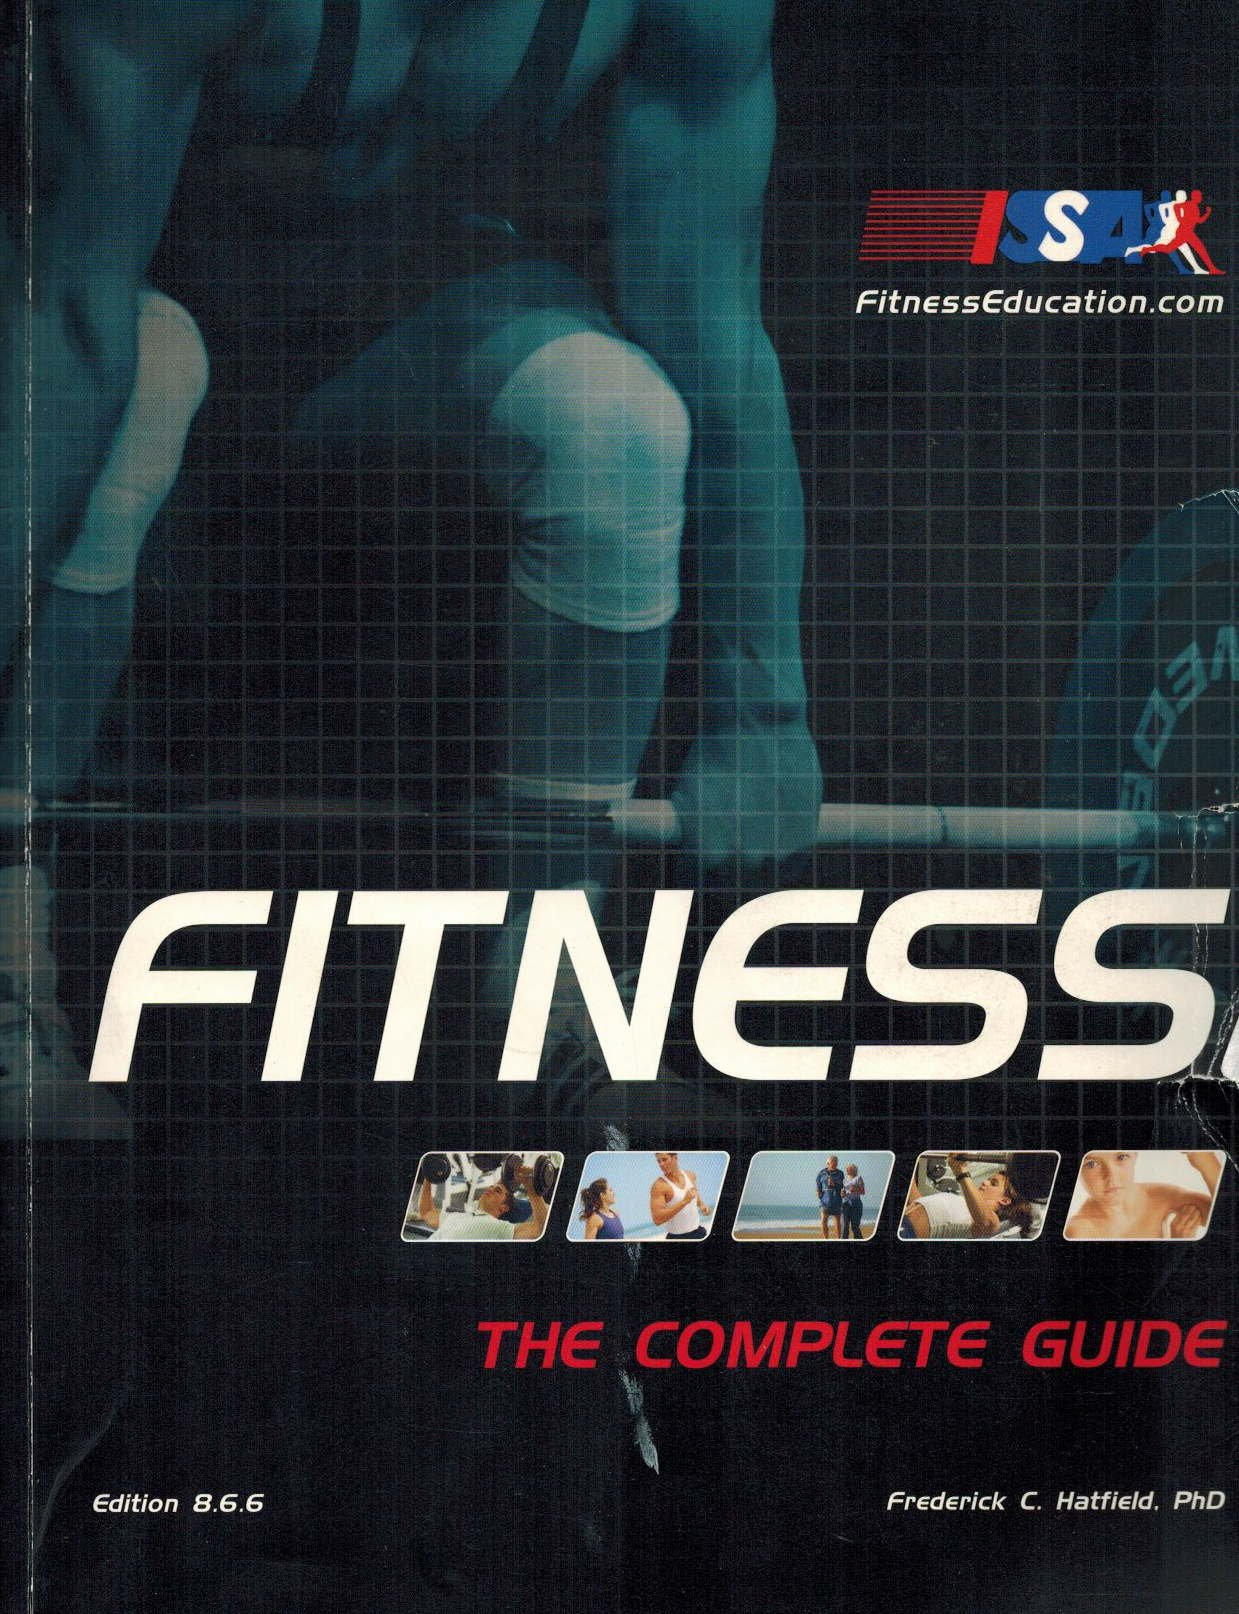 Fitness the complete guide official text for issas certified fitness the complete guide official text for issas certified fitness trainer program edition 866 phd frederick c hatfield amazon books 1betcityfo Images